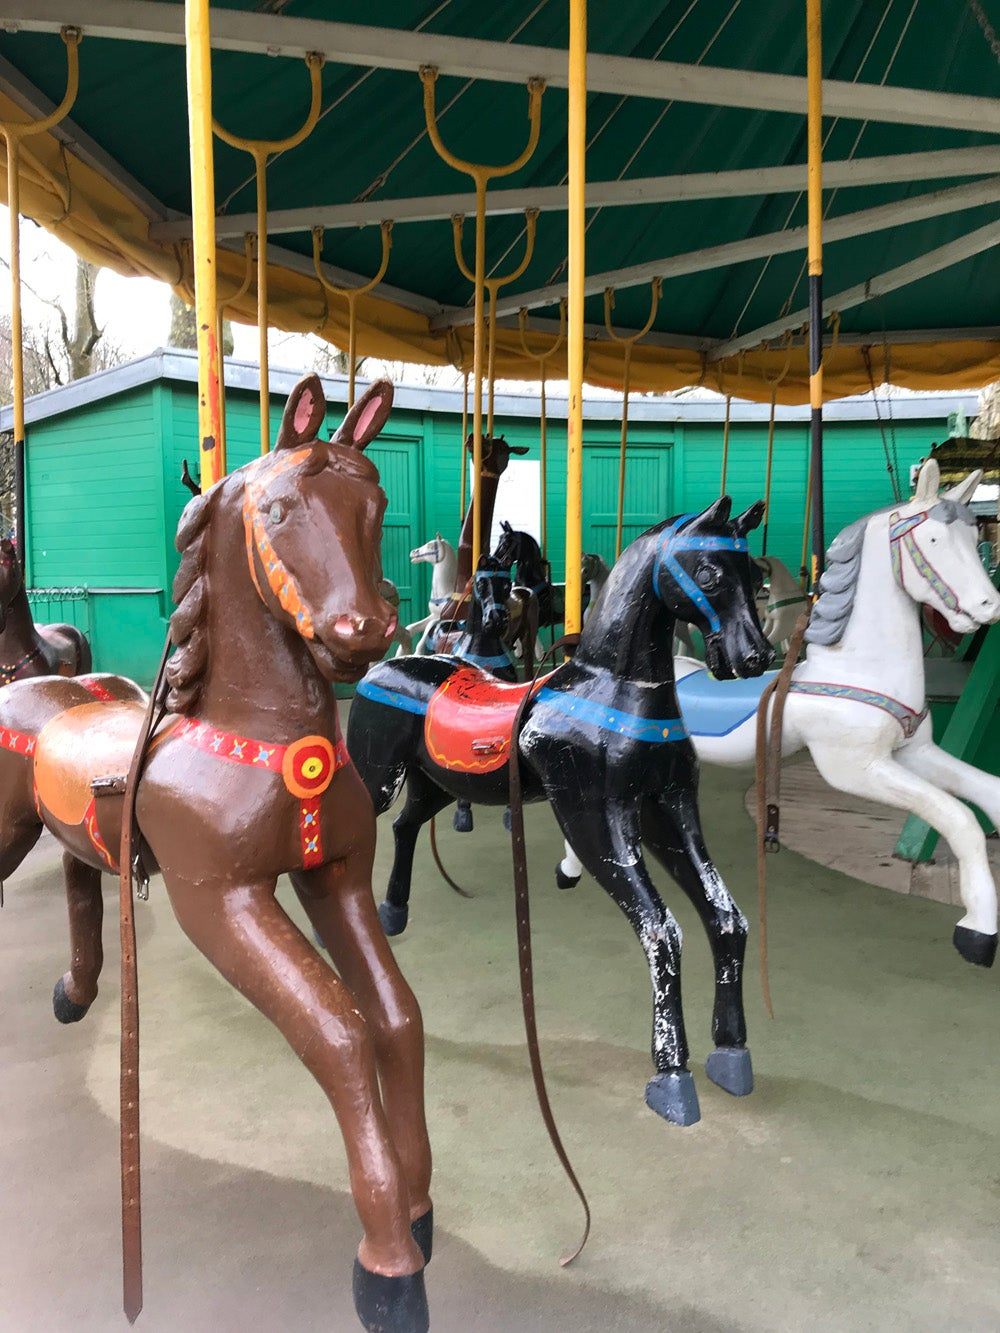 A close up of horses on the carousel